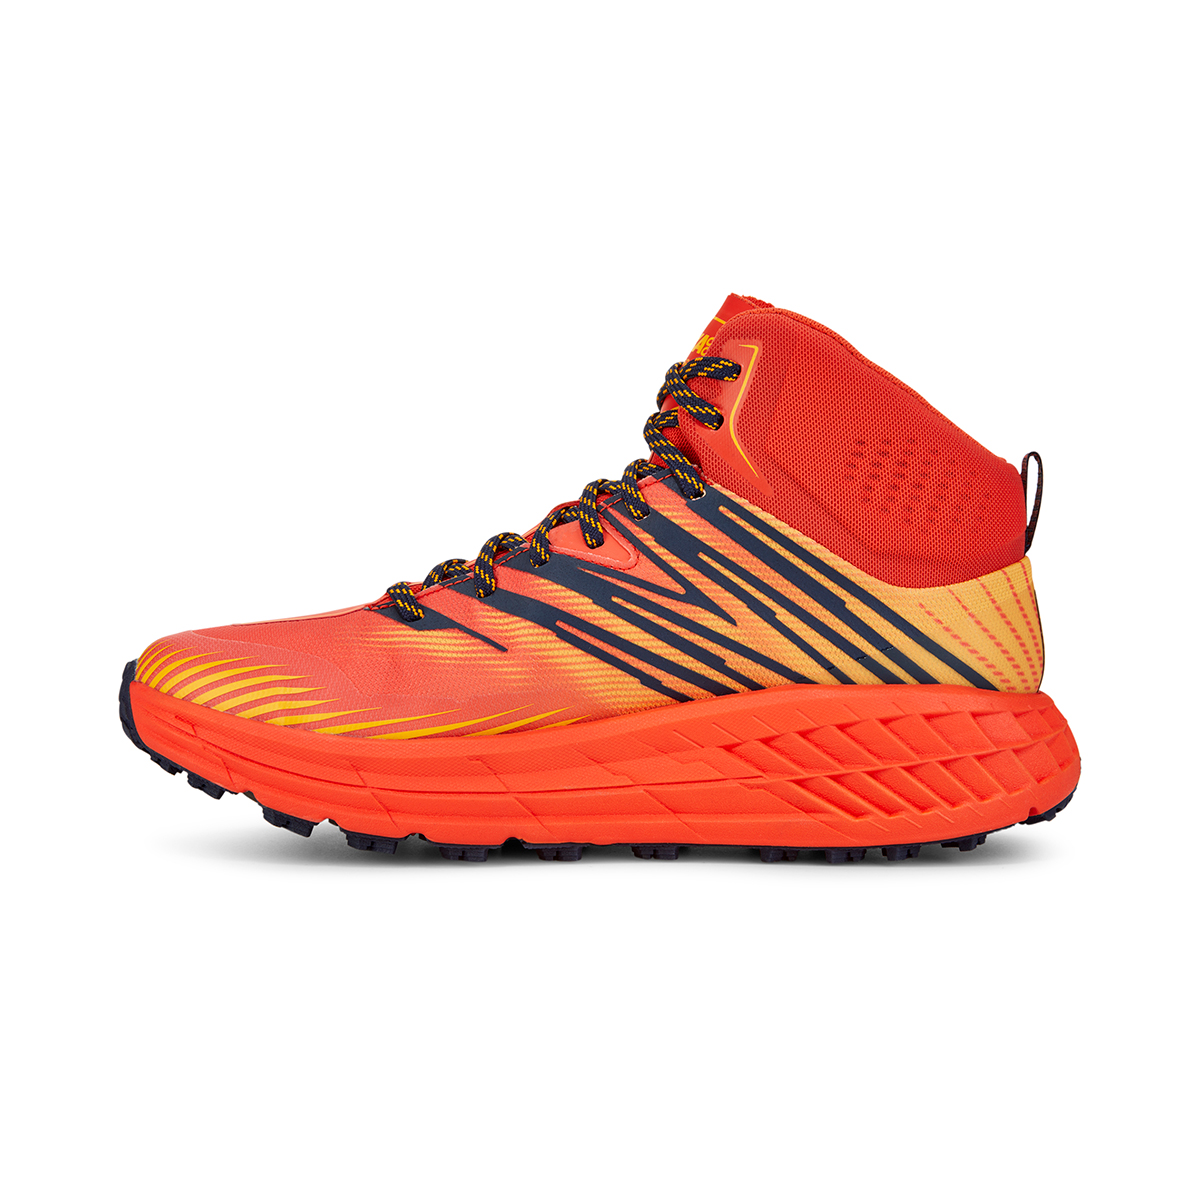 Men's Hoka One One Speedgoat Mid Gore-Tex Trail Hiking Shoe - Color: Mandarin Red / Gold Fusion - Size: 7 - Width: Regular, Mandarin Red / Gold Fusion, large, image 2